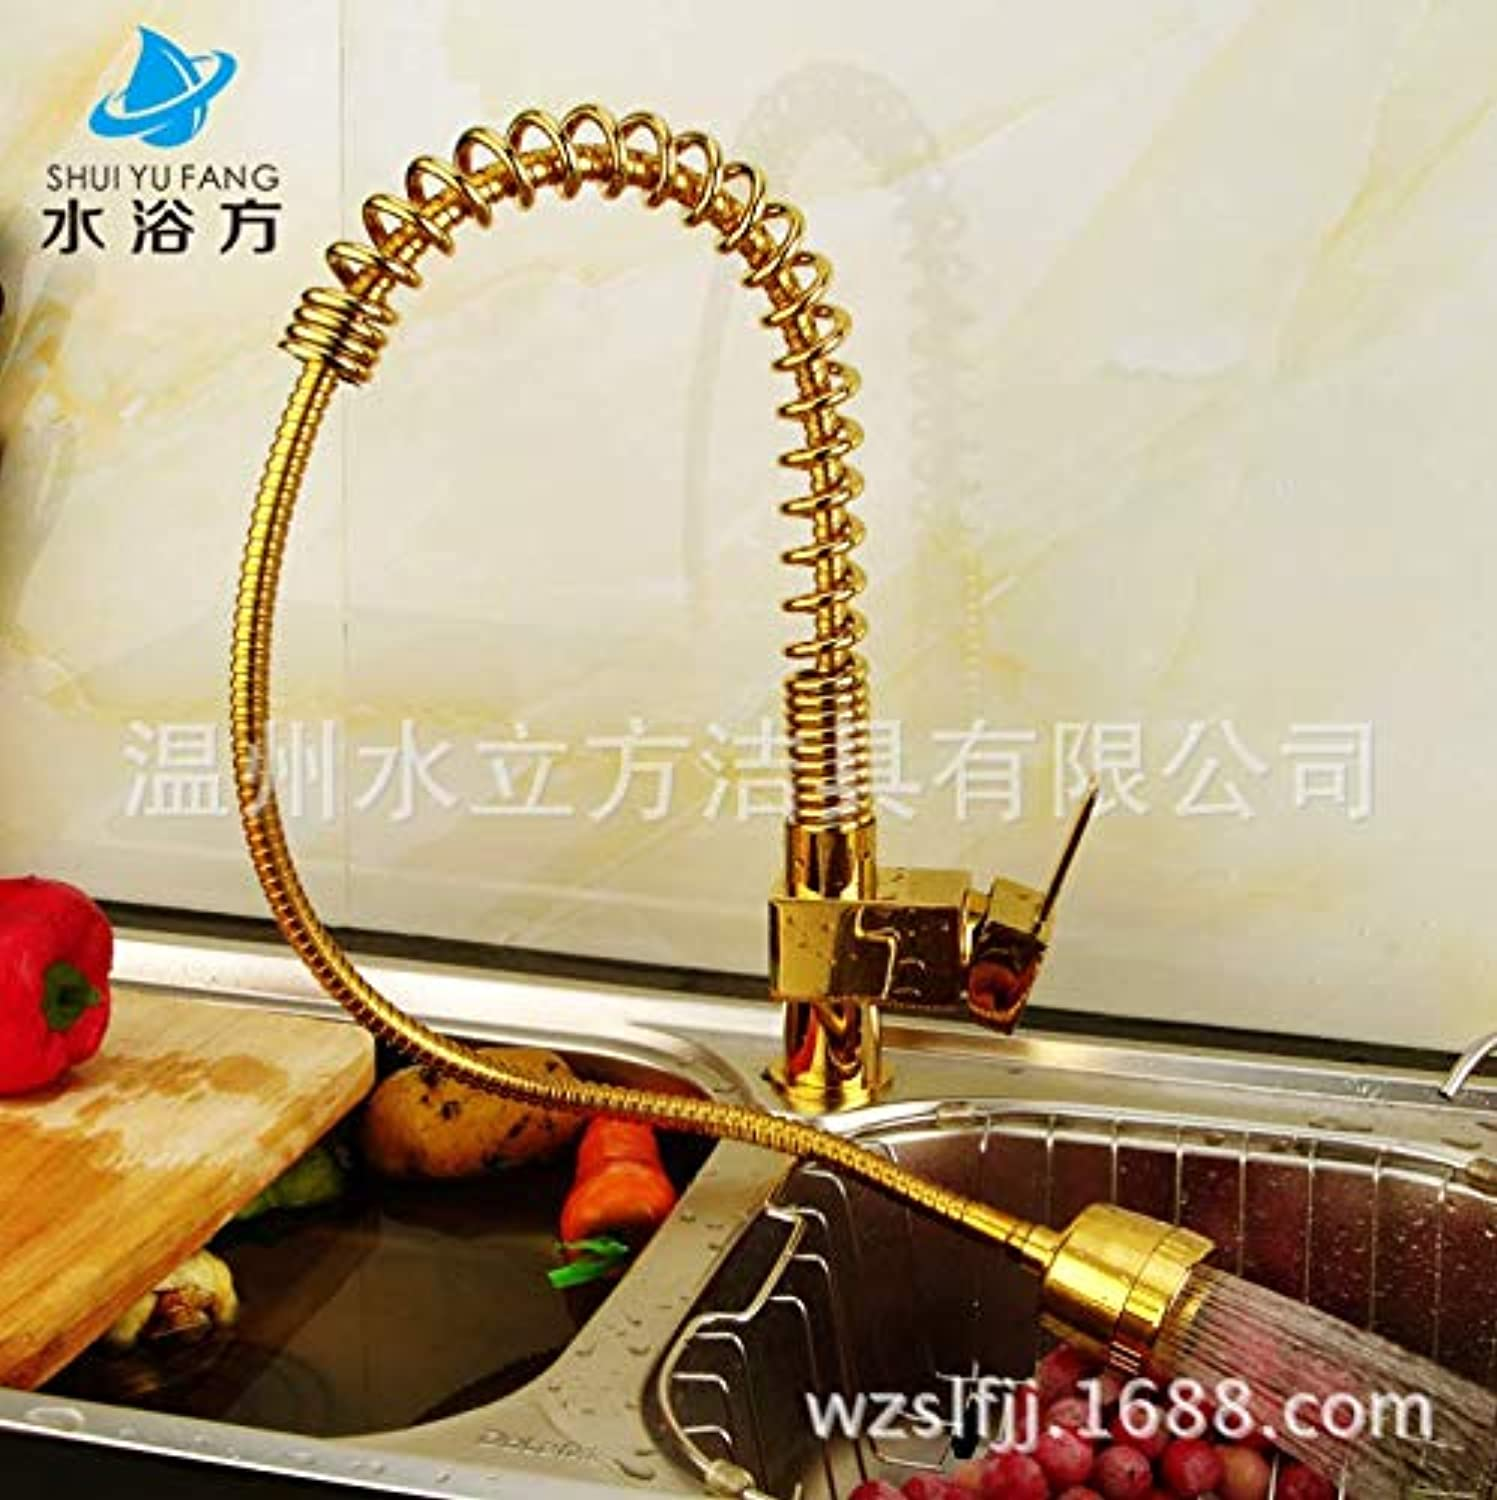 JONTON Copper single hole gold plated spring pullable kitchen sink hot and cold water faucet sink can be redated European